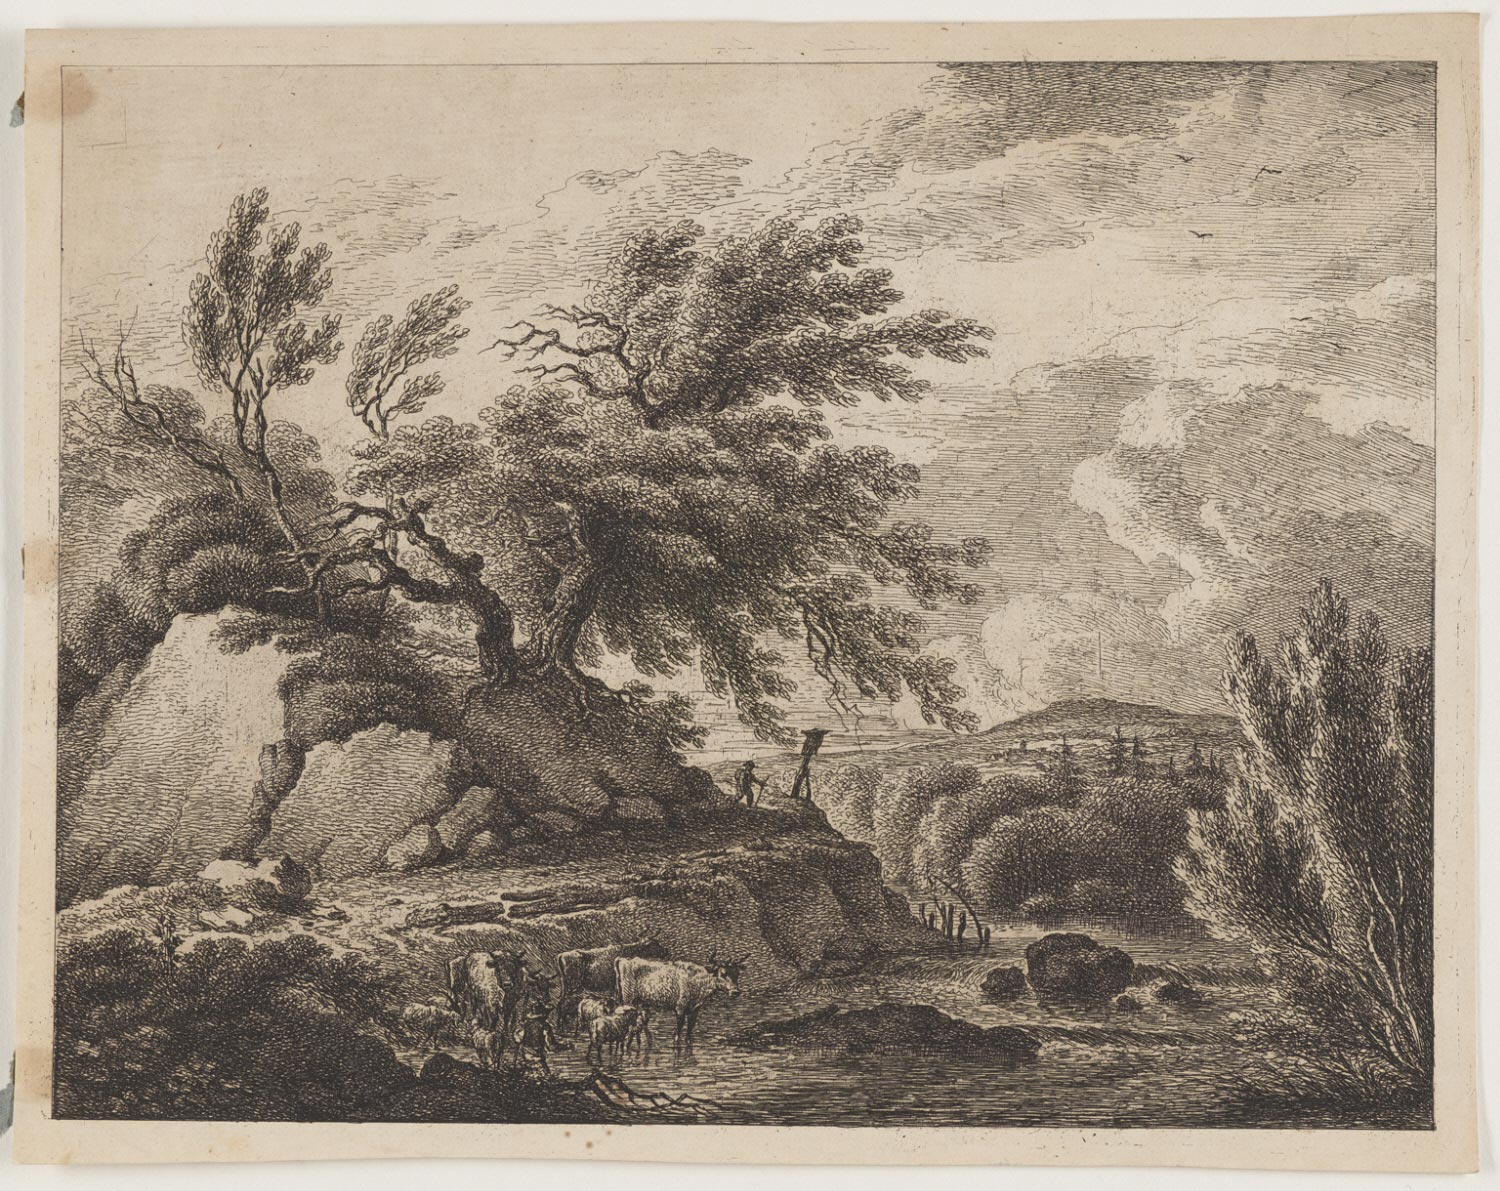 Man and Flock Fording Stream